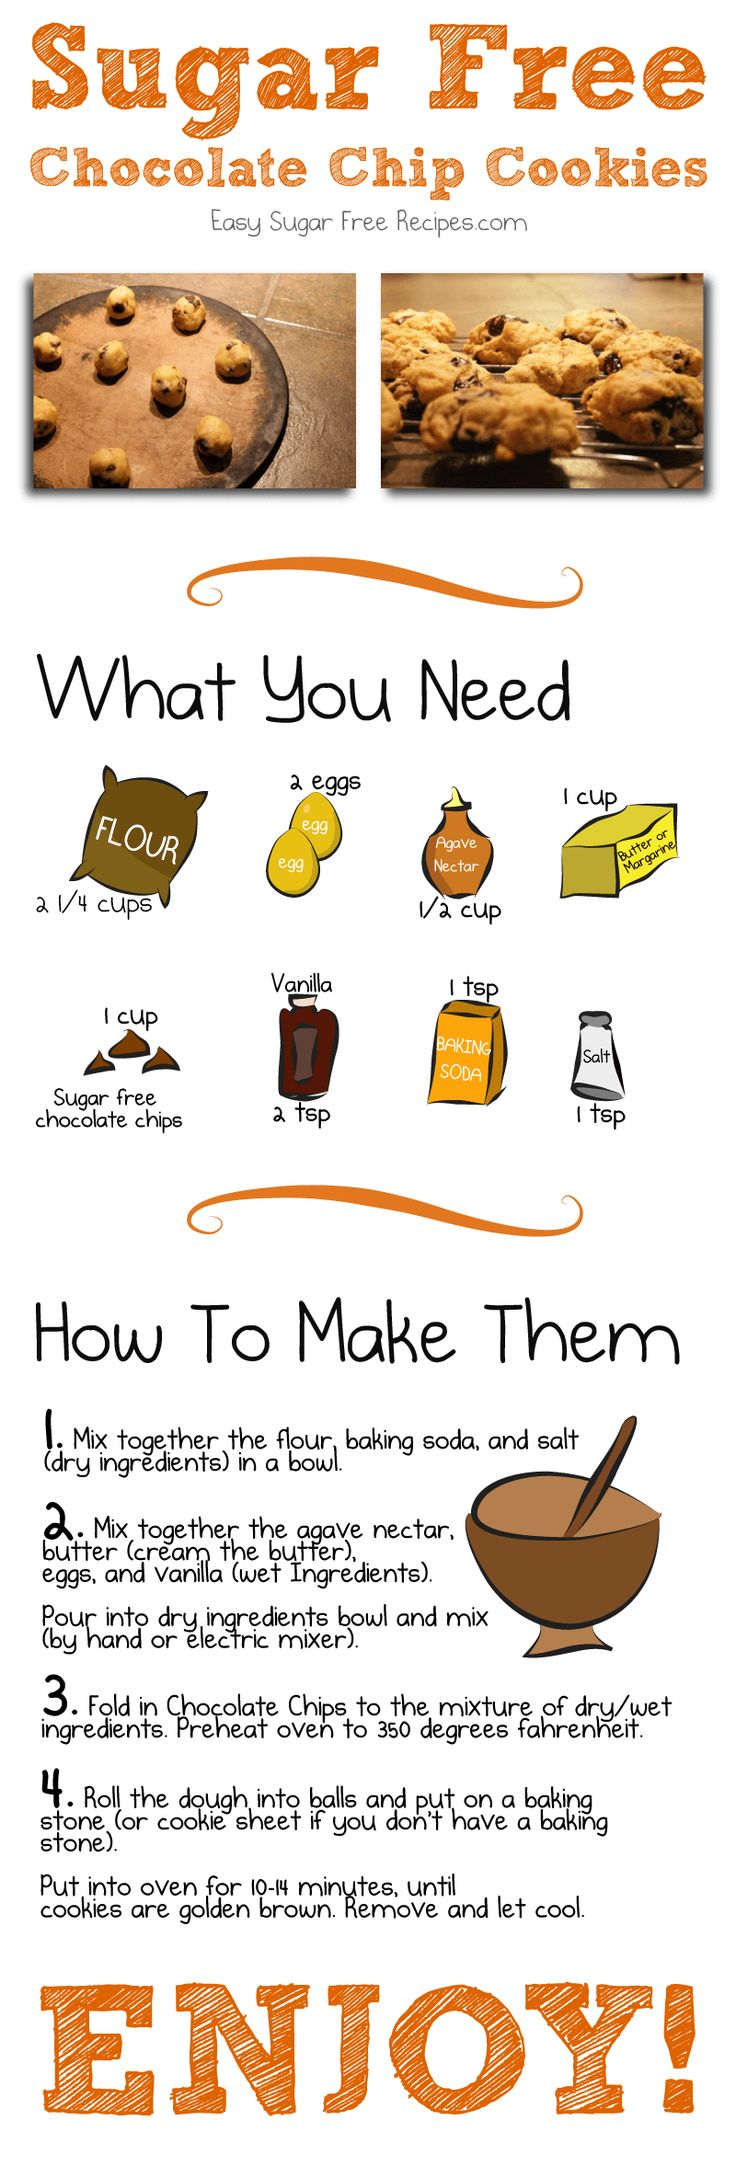 Baking sugar free chocolate chip cookie recipe? This printable recipe has oodles of photos, a comic with fun cartoons, and is diabetic-friendly.